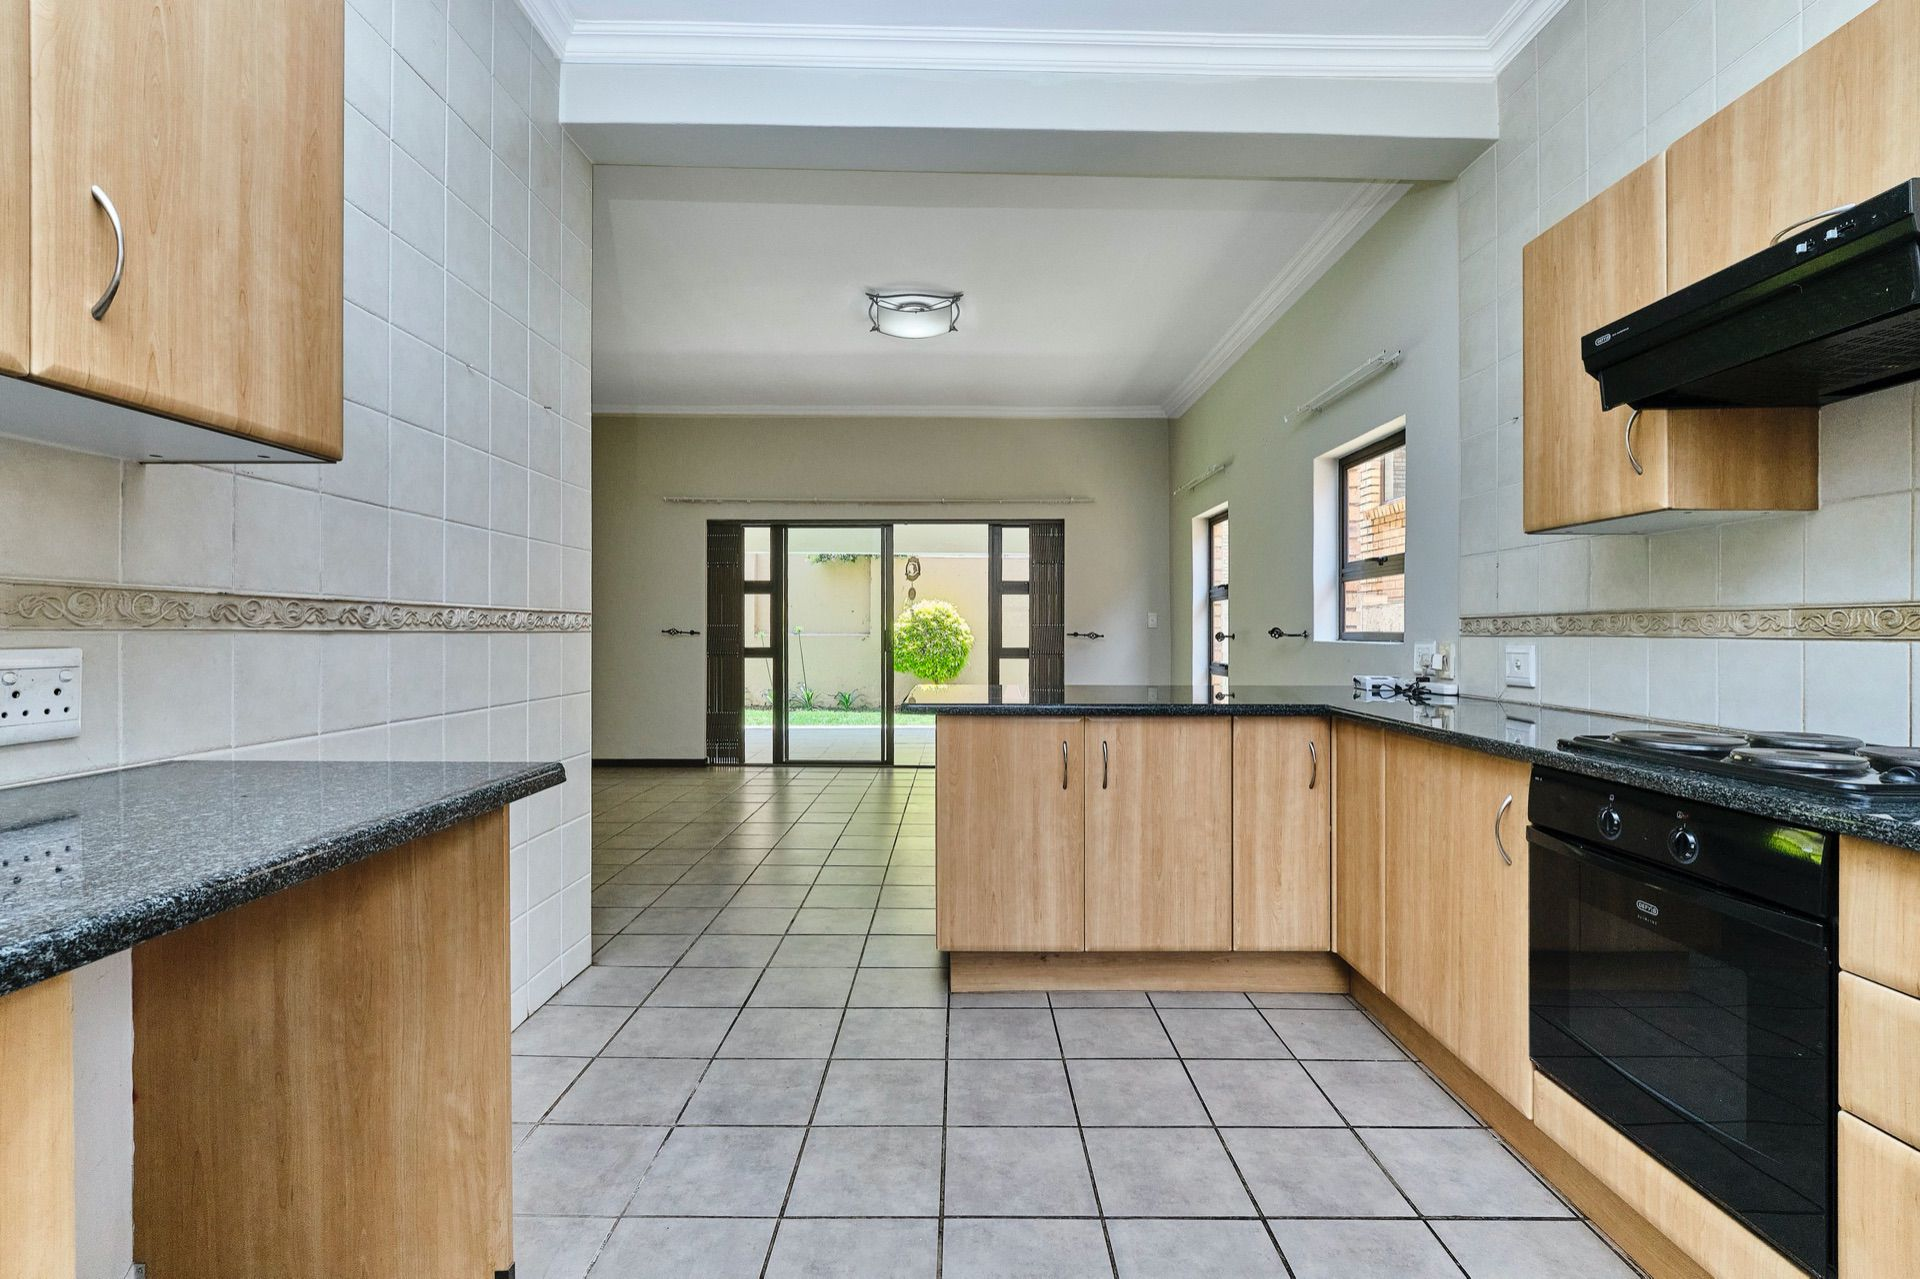 House in Noordhang - Woodlands -Kitchen into dining area.jpg